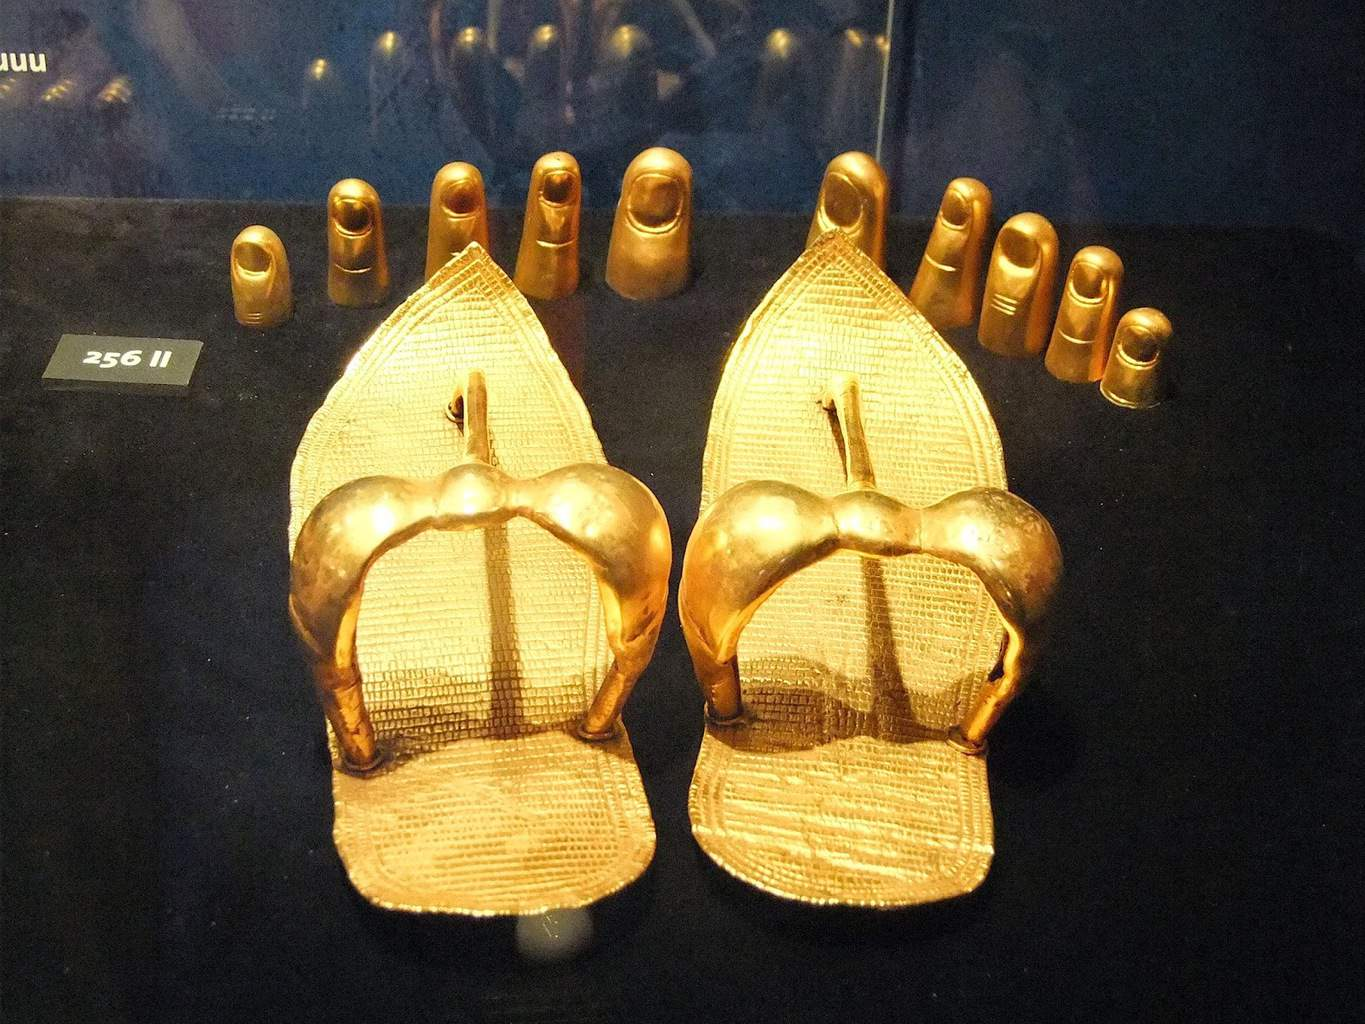 King Tut's gold sandals and toe covers - Photo: Florin Chiriac, Wikipedia